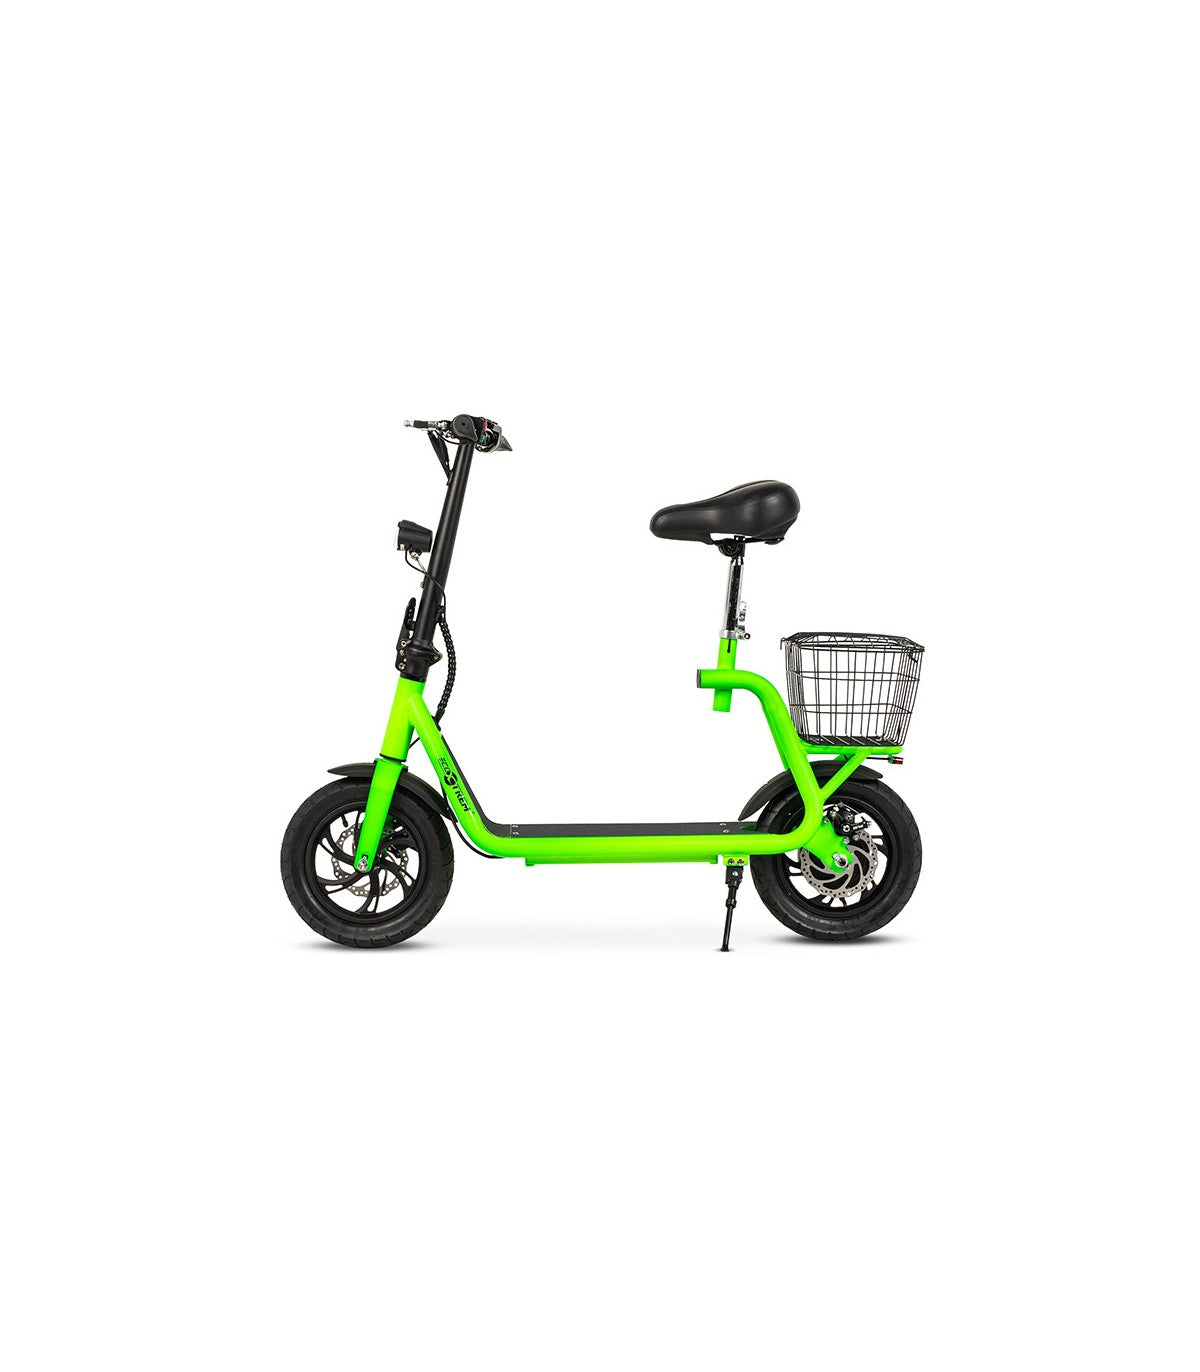 Patinete-Scooter Eléctrico tipo moto, motor 350W, color Verde